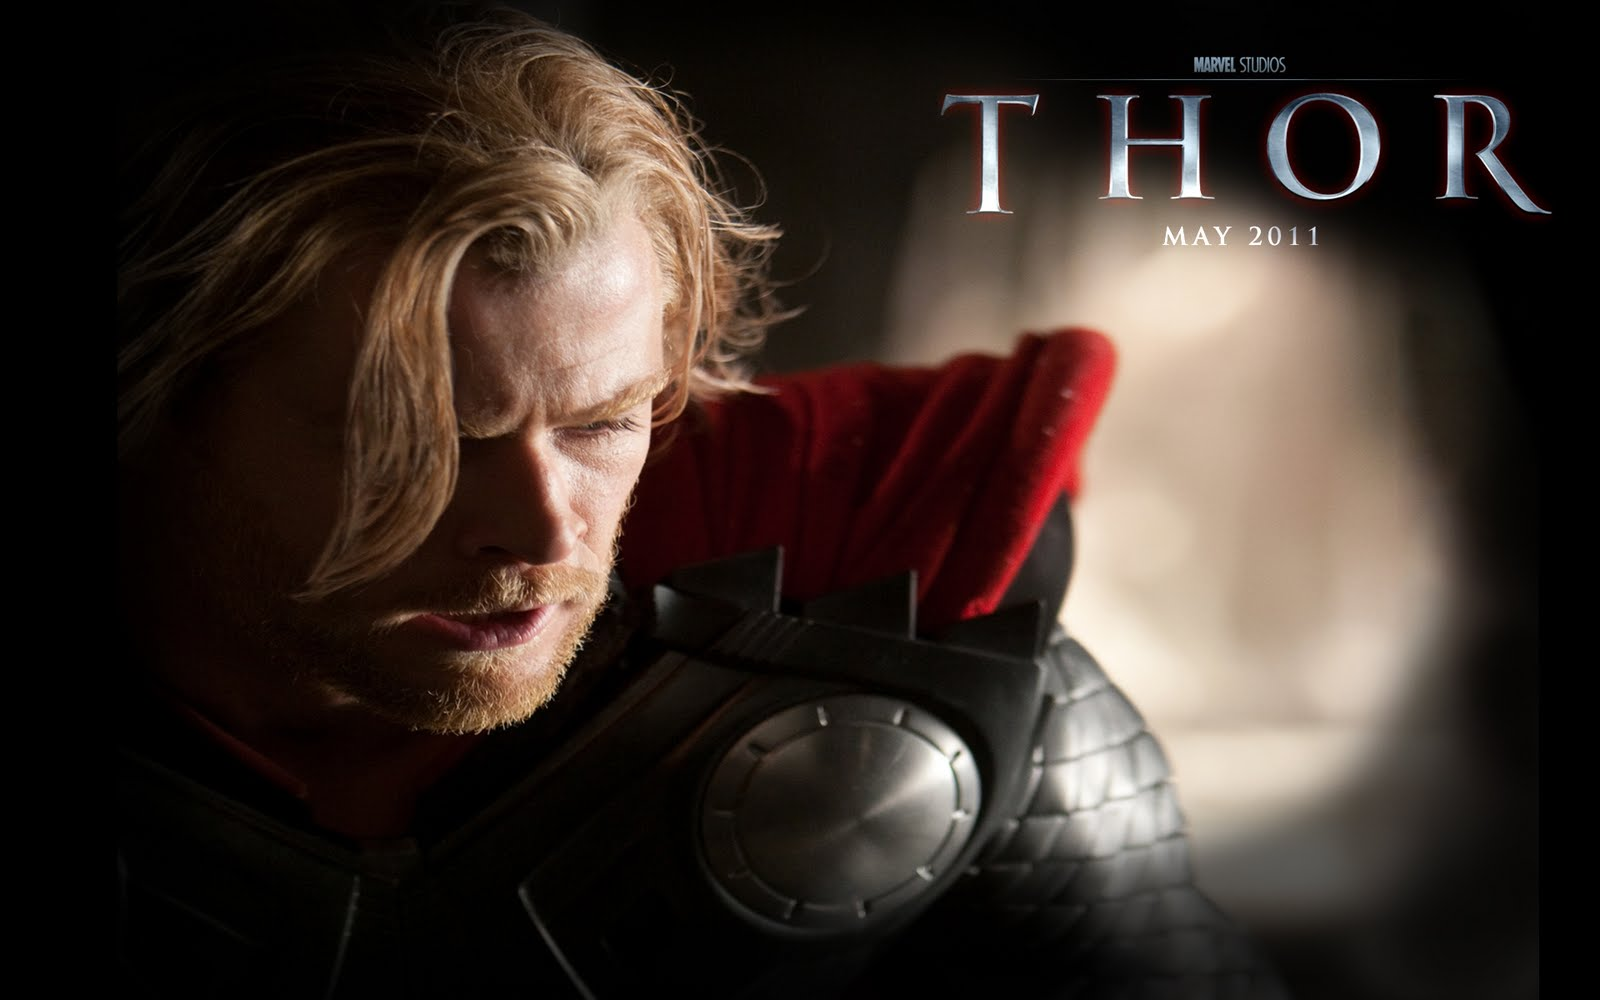 http://1.bp.blogspot.com/-O6SDMA6EAhg/TX2PXOjFxFI/AAAAAAAAFB0/mqtMXxl-Cpo/s1600/Thor-Movie-2011-Wallpapers-5.jpg